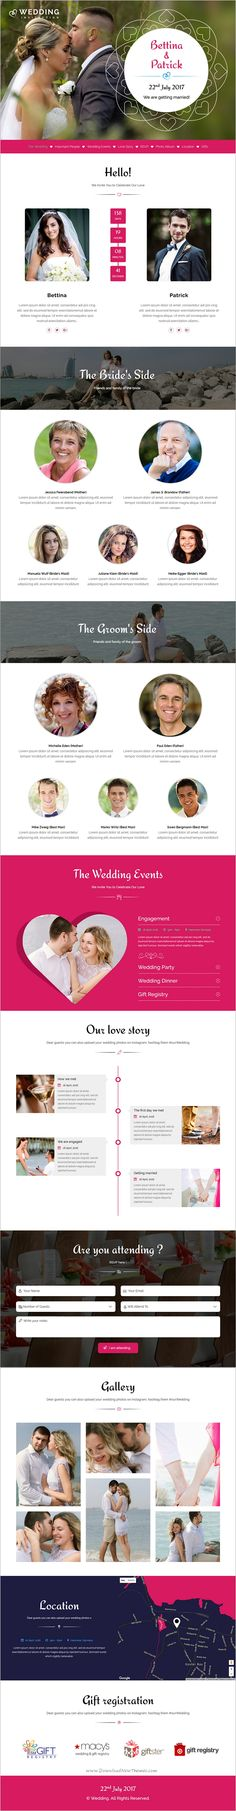 #Wedding #invitation is an elegant and modern design responsive HTML bootstrap template for #webdev young couples who are looking for something different then standard online invitation cards websites download now➩ https://themeforest.net/item/wedding-invitation-responsive-html-template/19158839?ref=Datasata